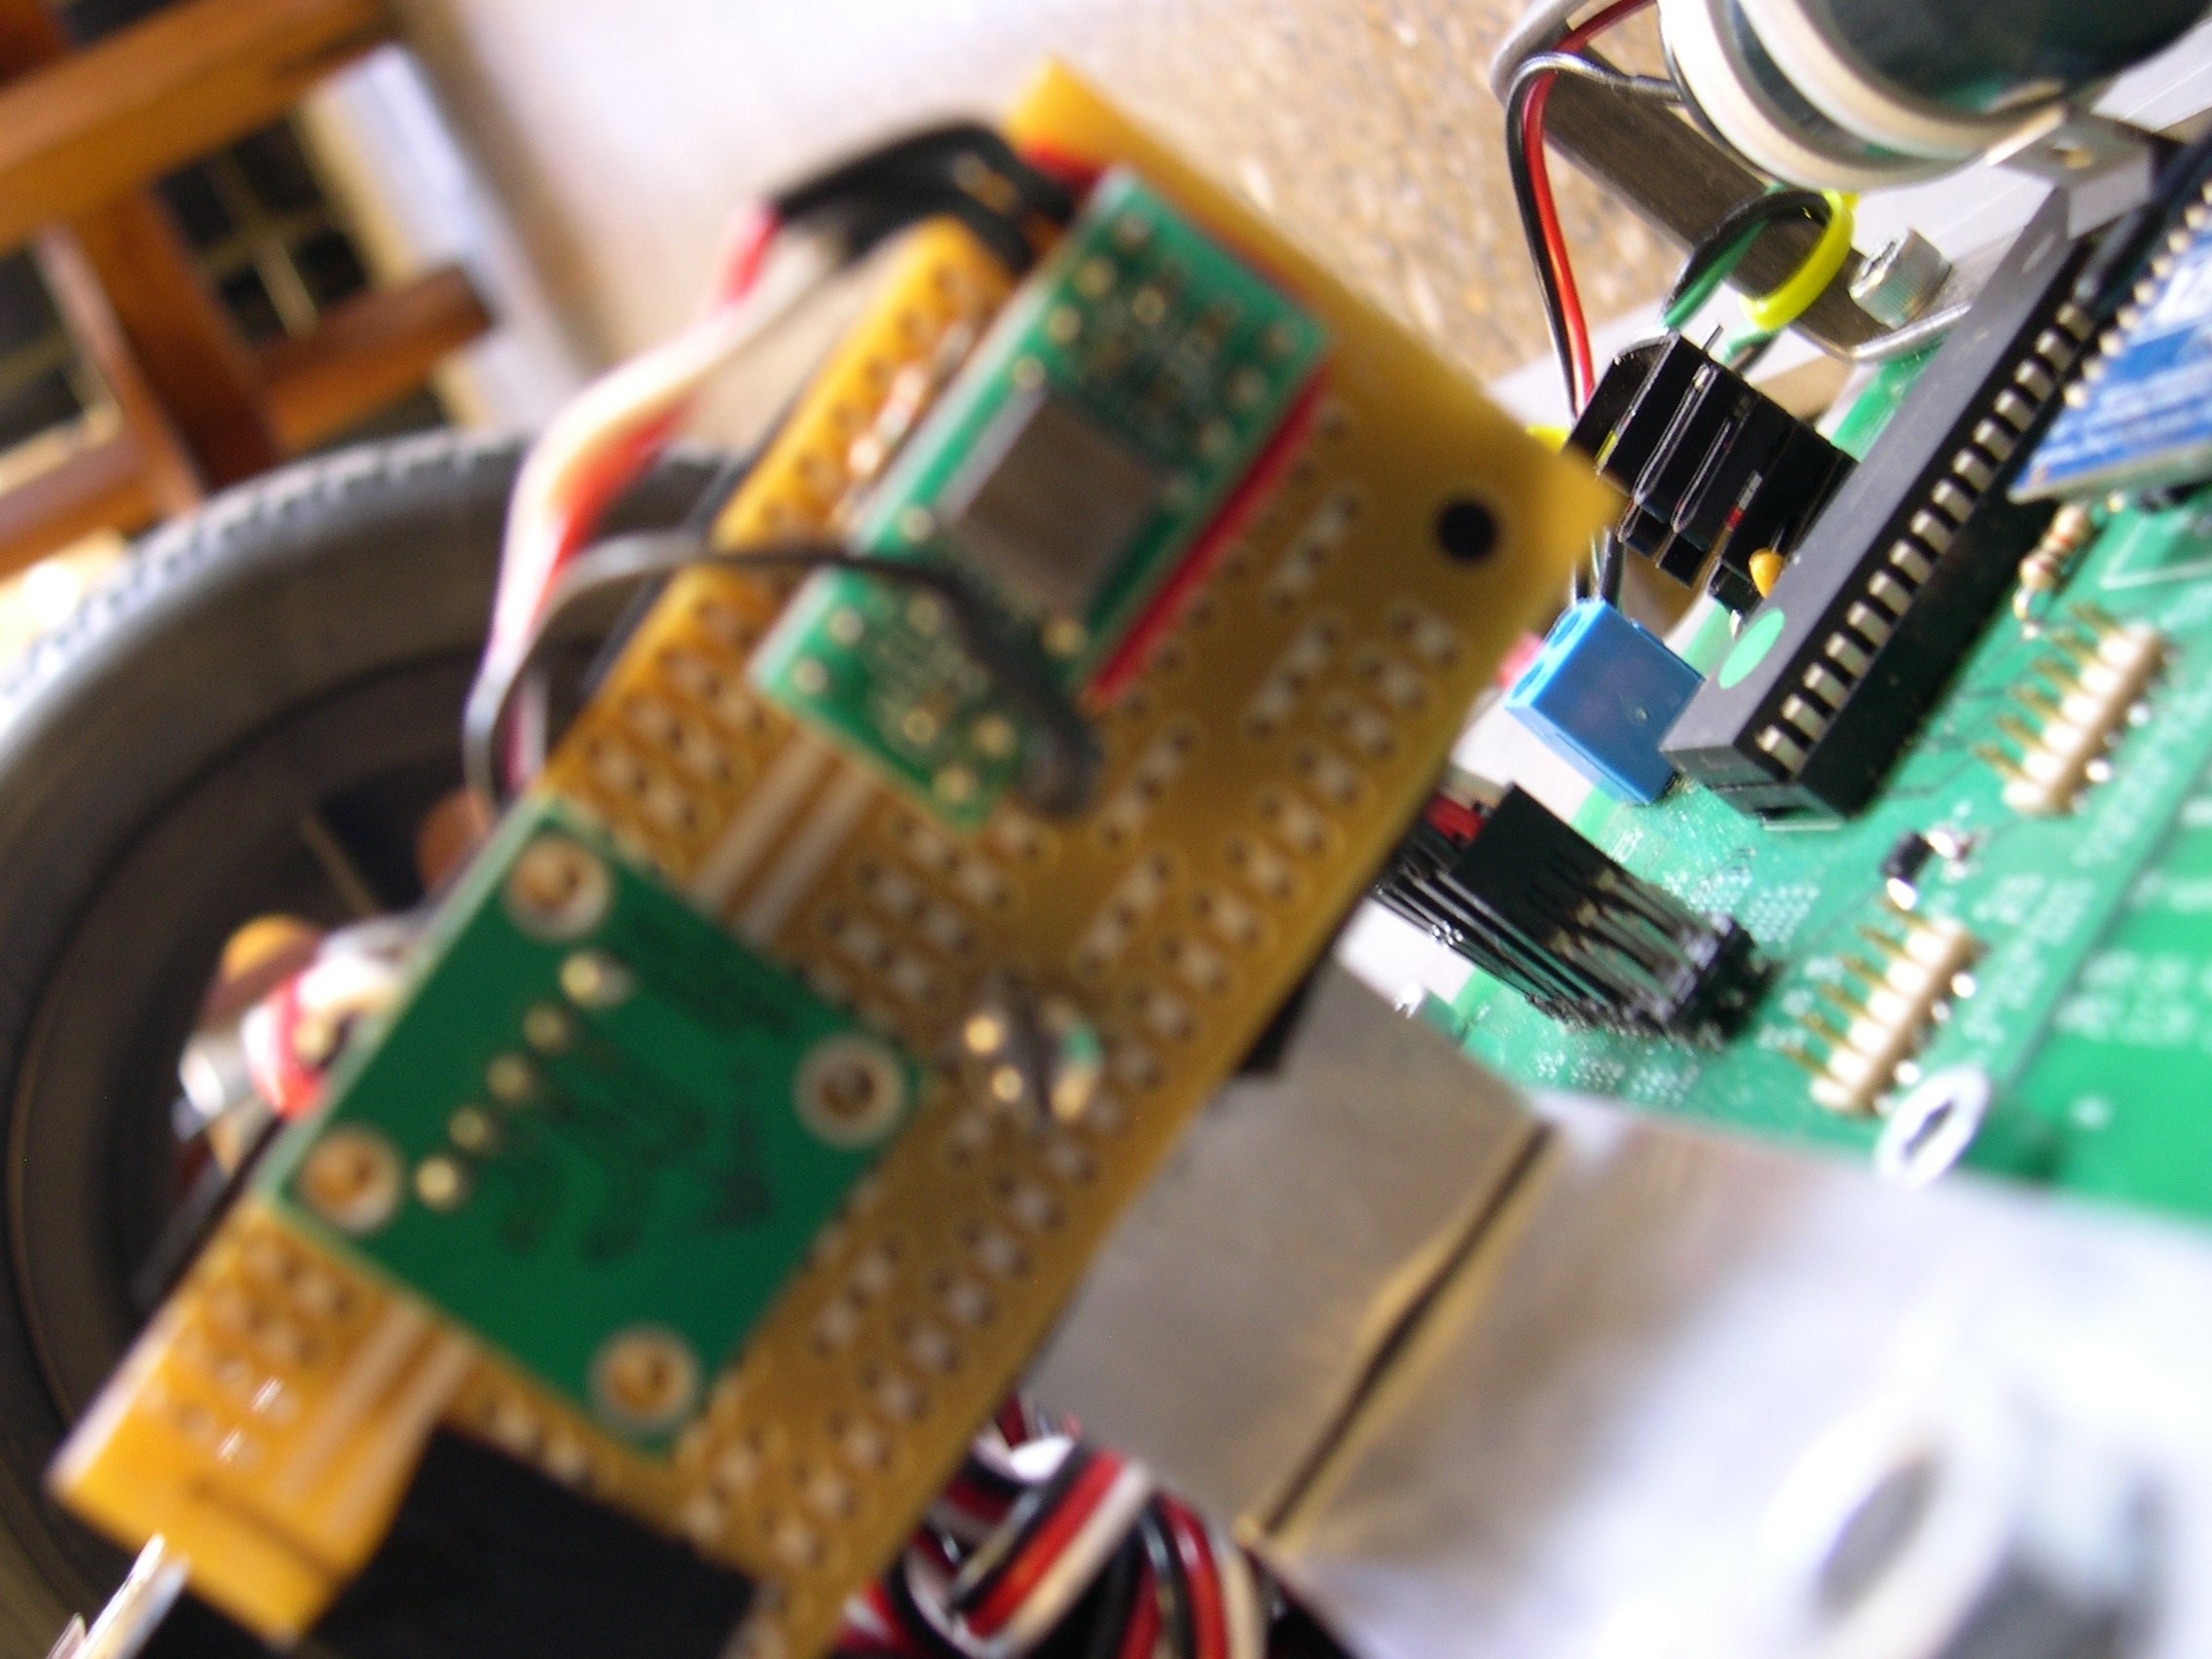 The Diy Segway Made Circuit Board For And Sctoor Buy Custom Miscellaneous